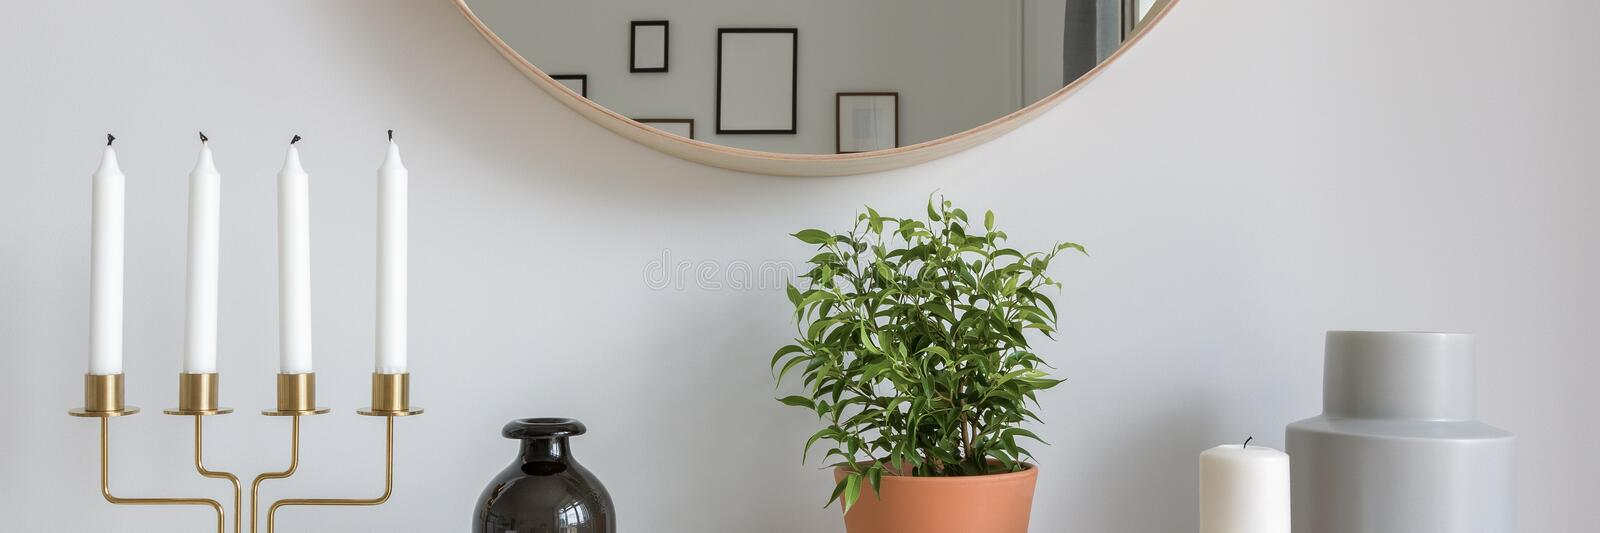 Scandinavian interior with decorative accessories stock images